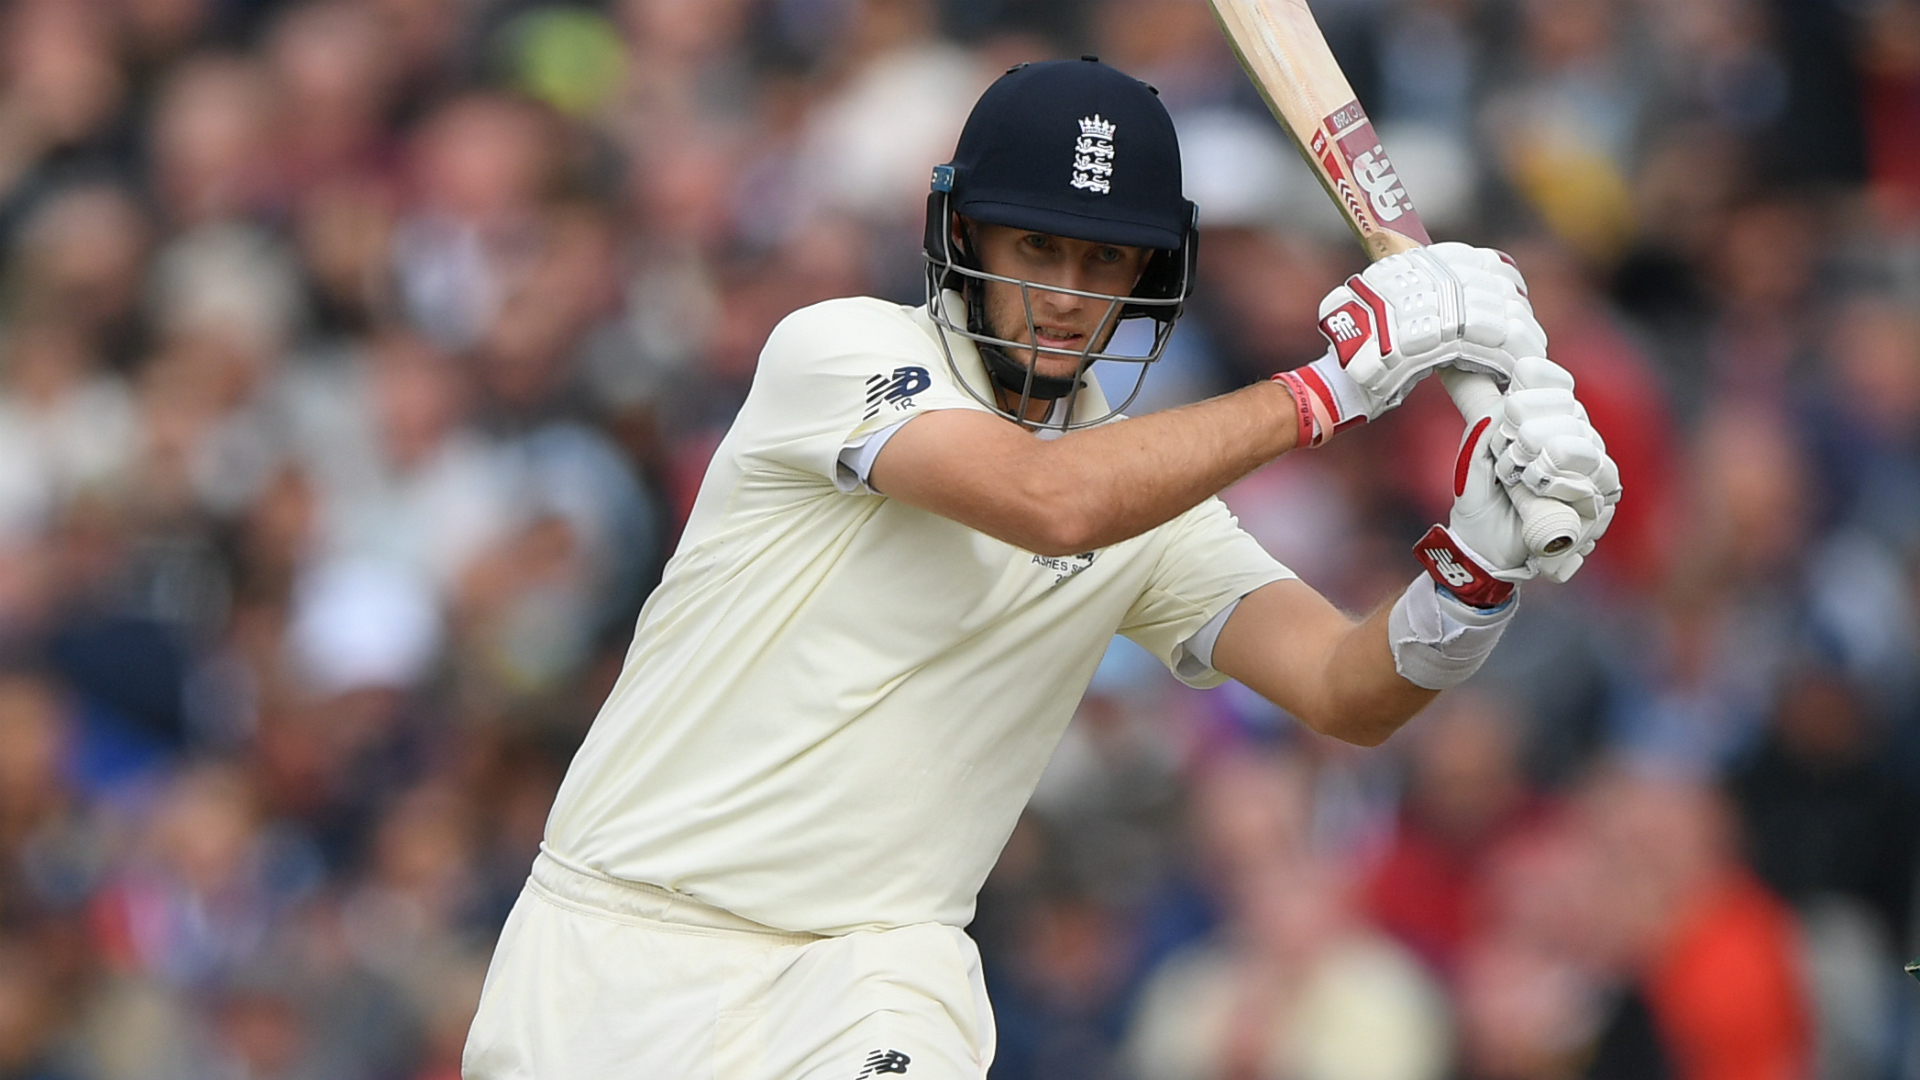 South Africa vs England Live Cricket Score, 4th Test 2019-20 Day 2: Get Latest Match Scorecard and Ball-by-Ball Commentary Details for SA vs ENG Test from Johannesburg